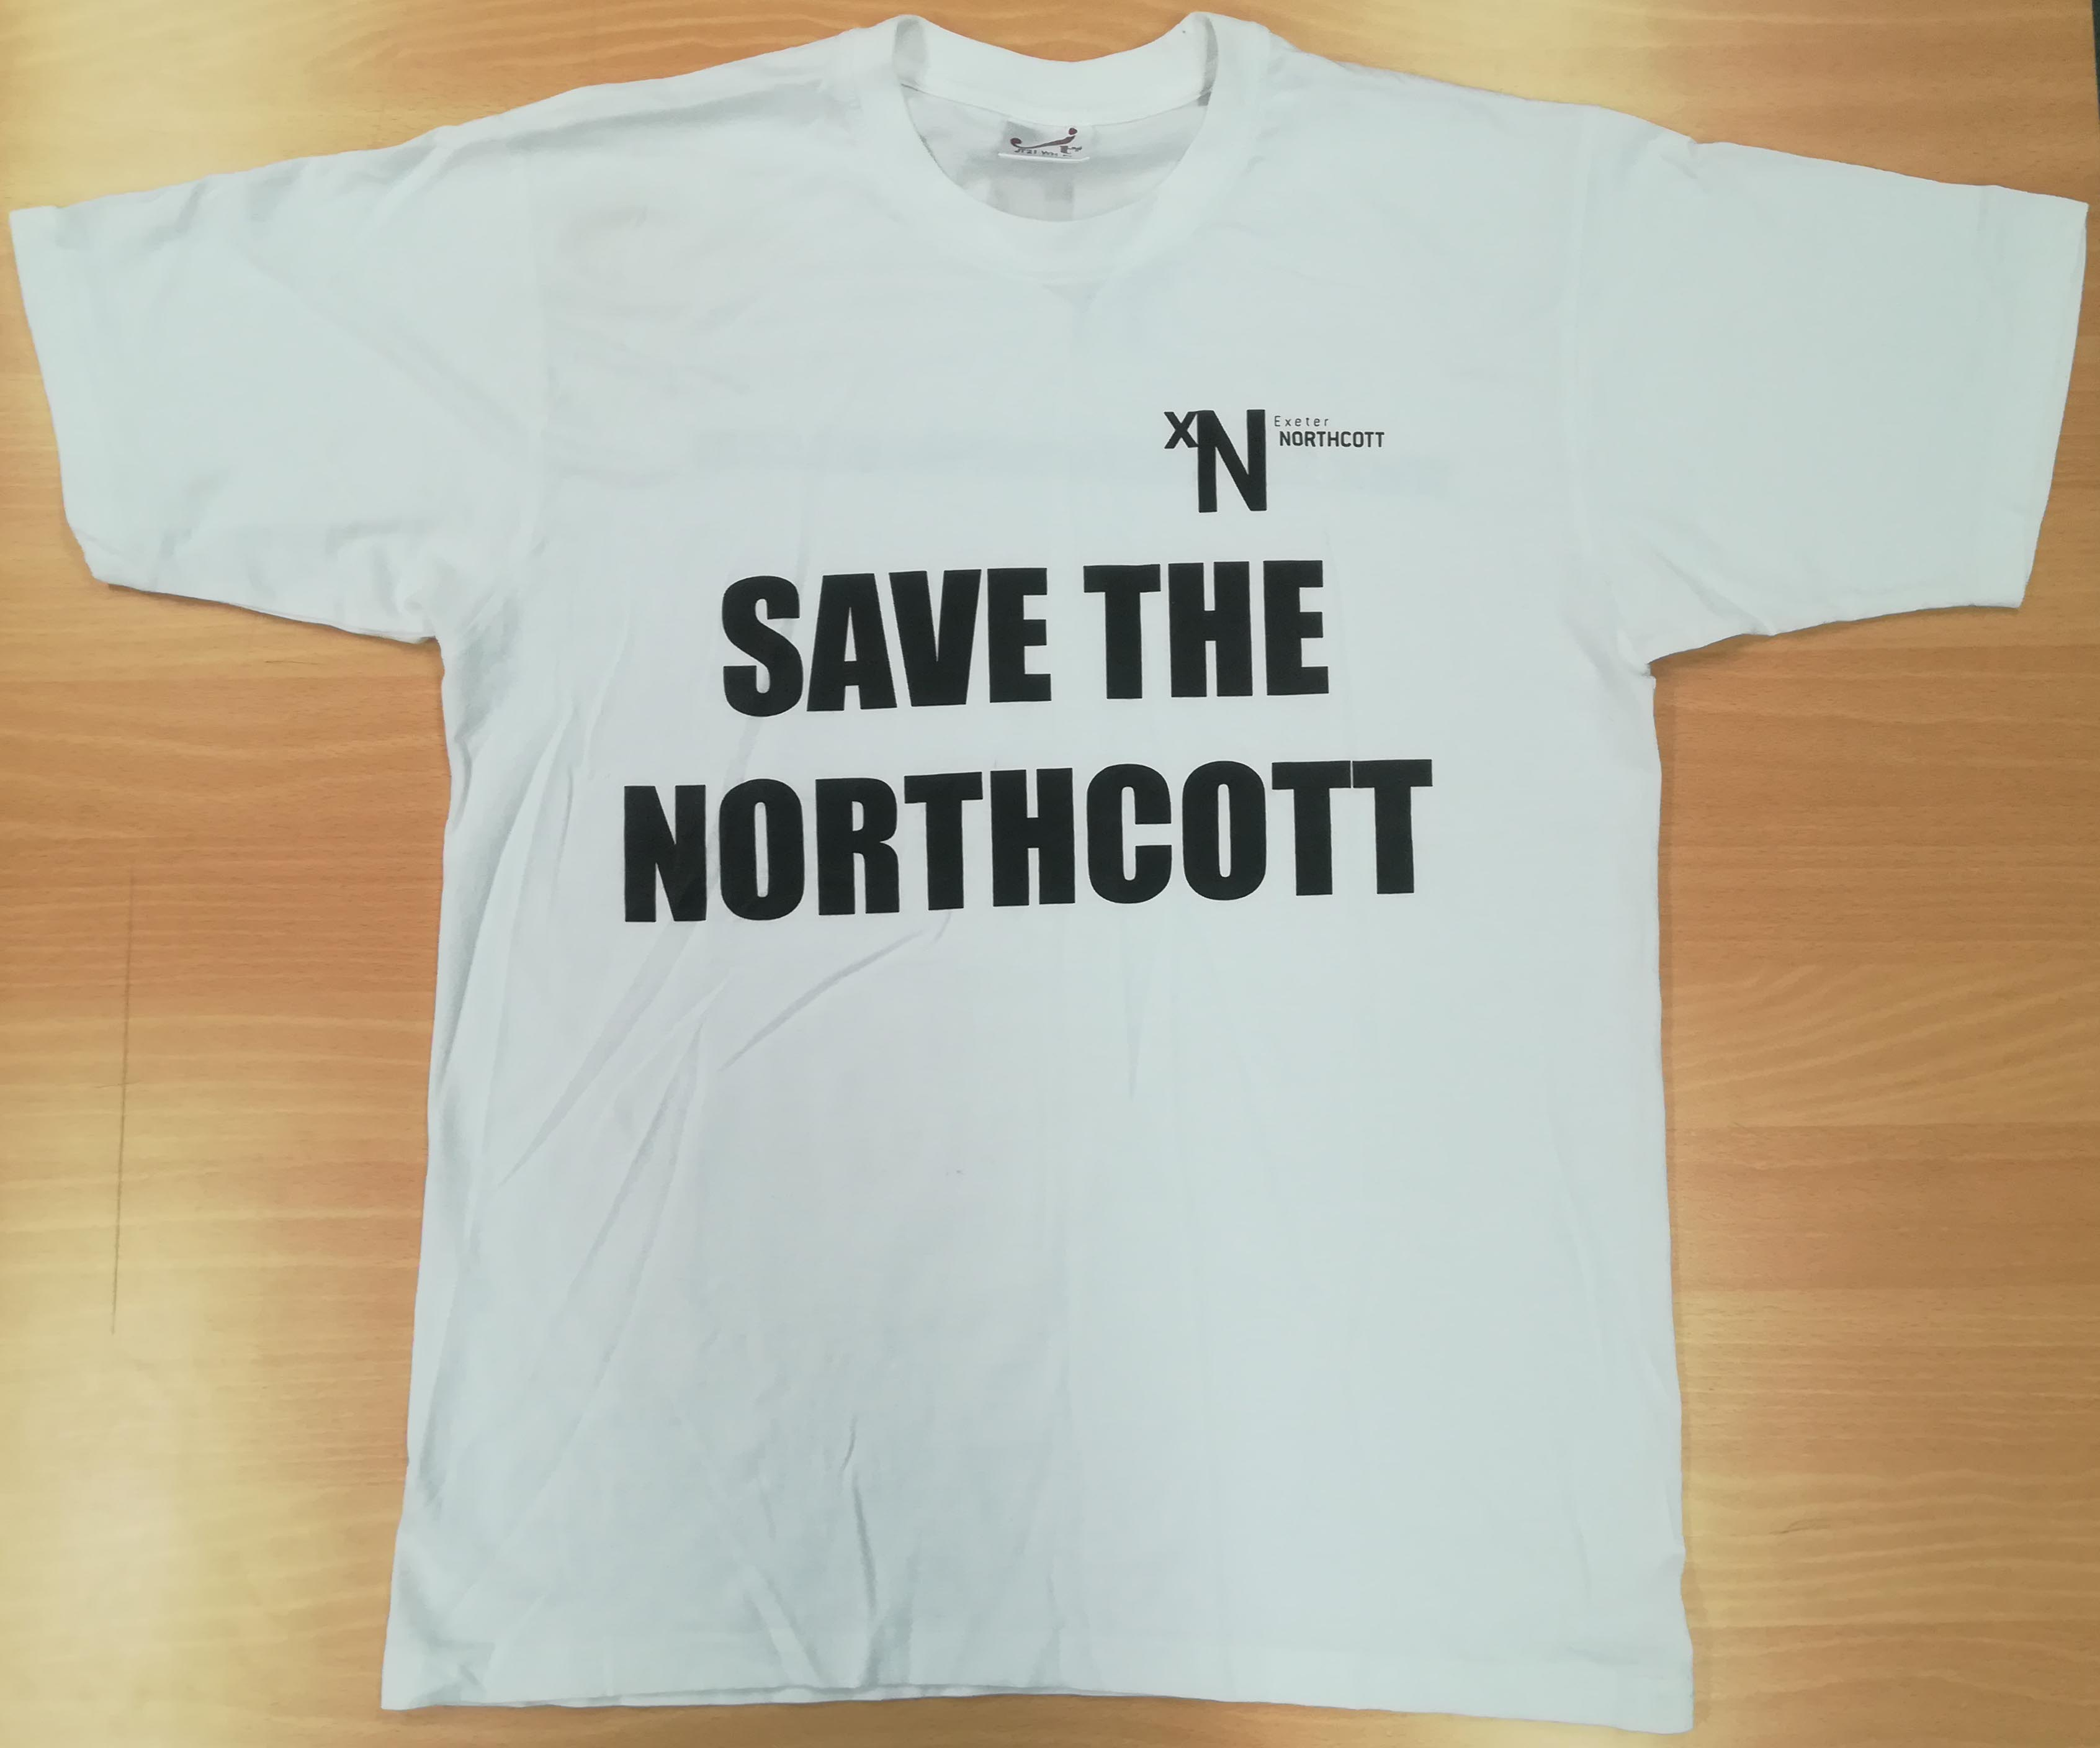 Save the Northcott campaign t-shirt